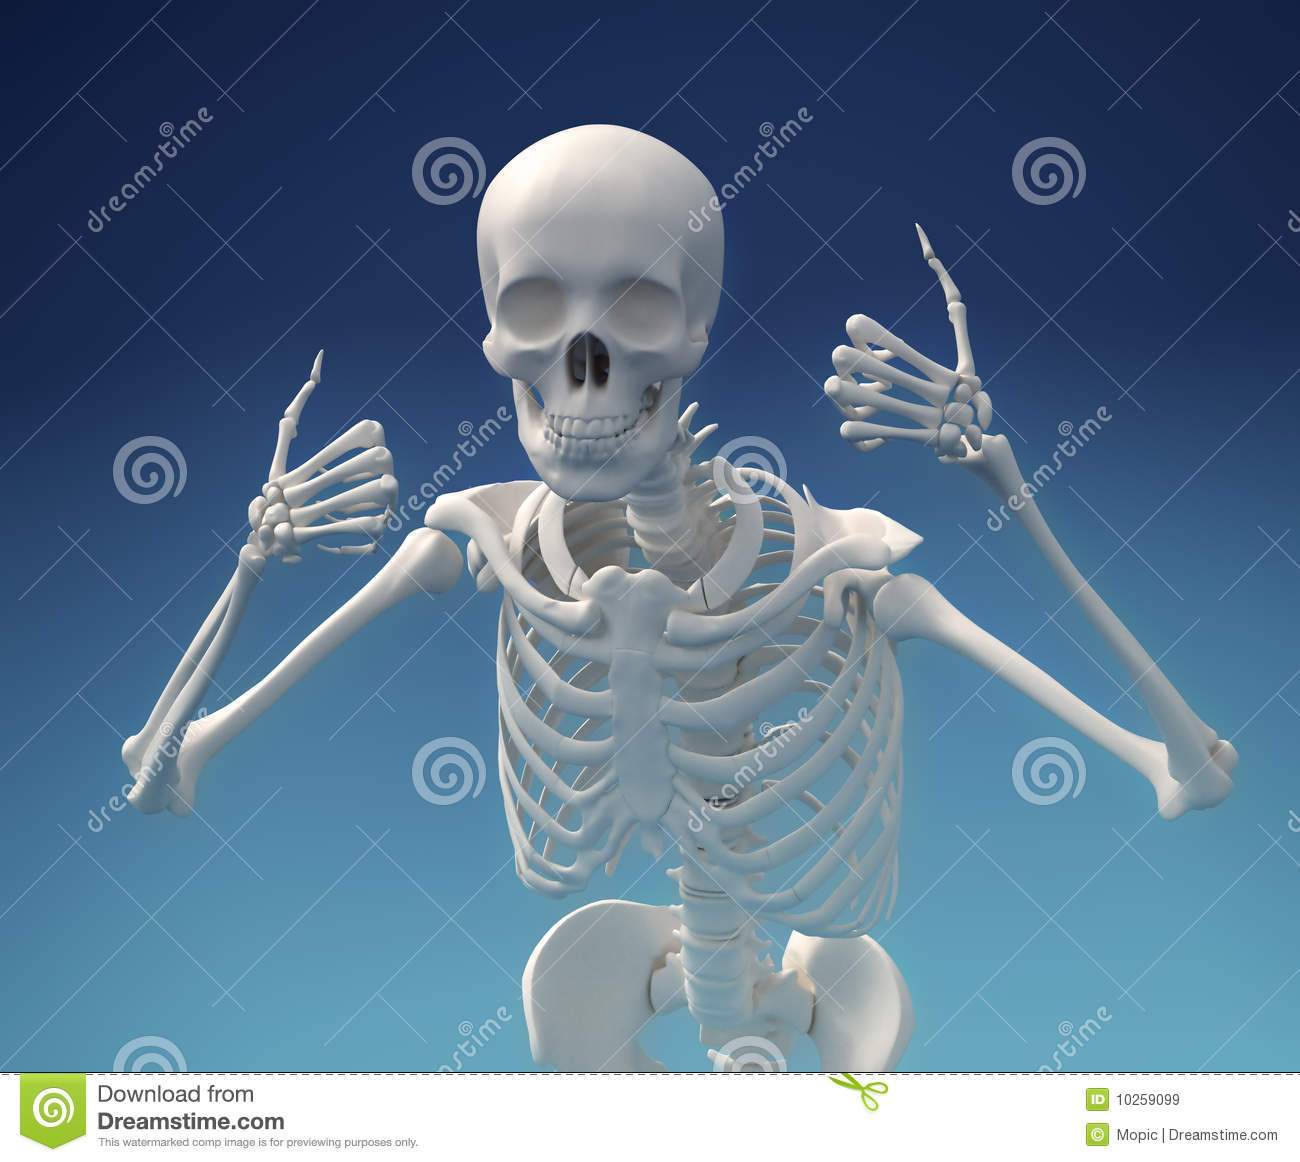 Download Thumbs up skeleton! stock image. Image of finger, background - 10259099